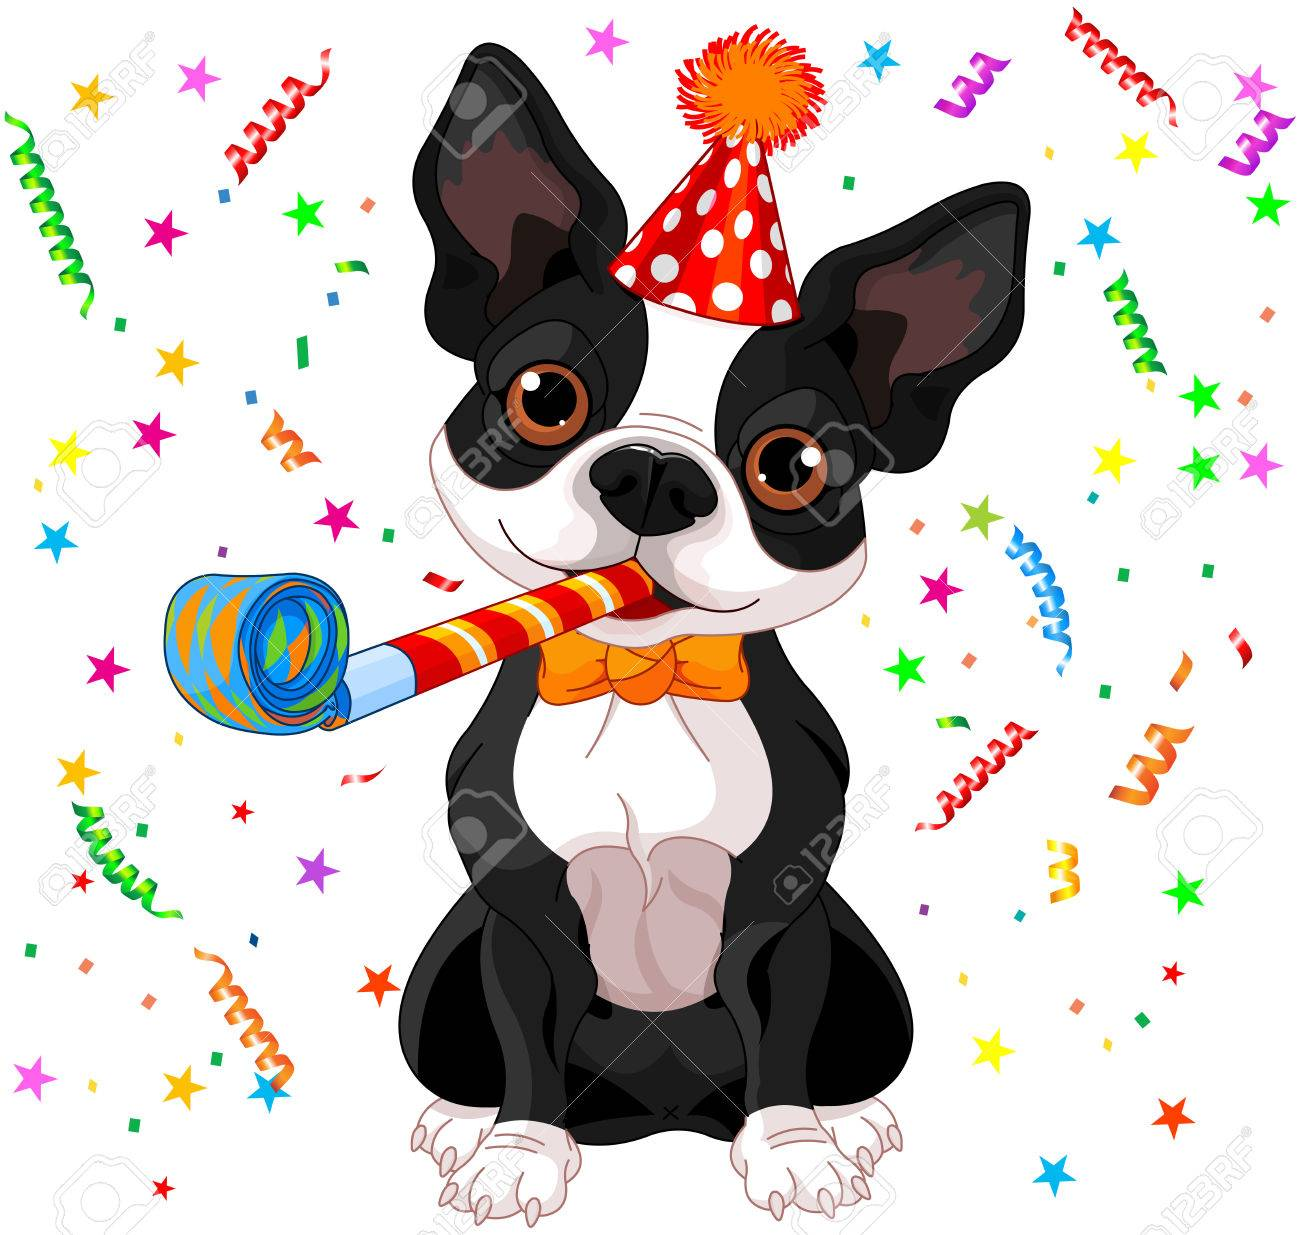 L'éducateur canin est il un magi-chien ? - Page 2 35588778-illustration-of-cute-boston-terrier-celebrating